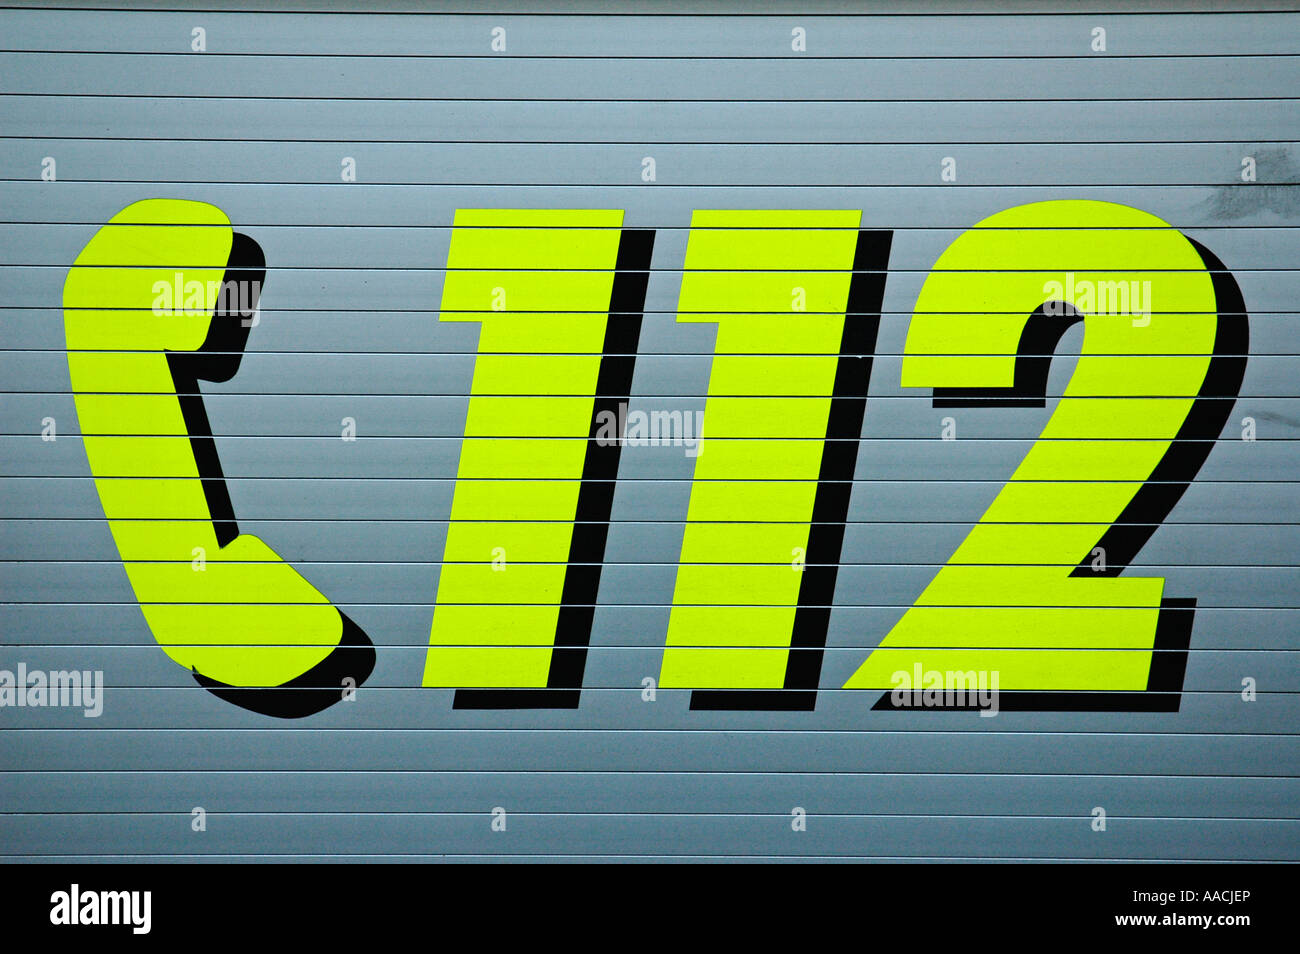 Emergency call telephone number 112 for police and firebrigade - Stock Image